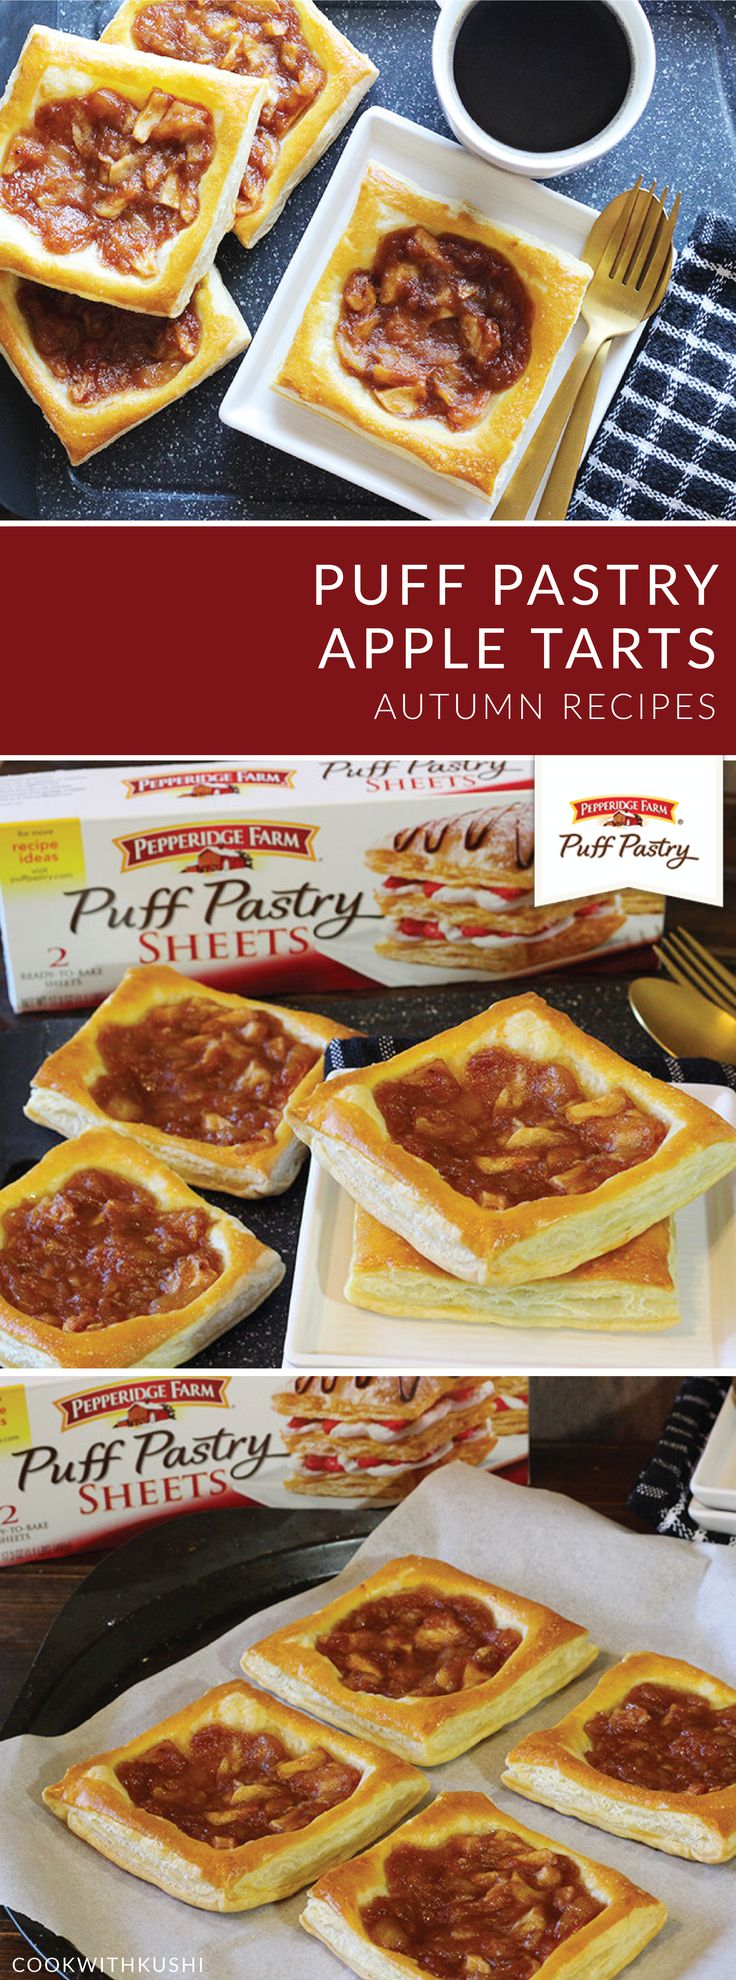 These Puff Pastry Apple Tarts from Kushi, of Cook with Kushi, have us dreaming of crisp fall days. This easy dessert recipe allows you to enjoy your favorite autumn flavors thanks to the combination of Pepperidge Farm® Puff Pastry Sheets, brown sugar, cinnamon, roasted nuts, and apples. Serve this sweet treat at your next Thanksgiving celebration for a delicious dish that your family is sure to love.